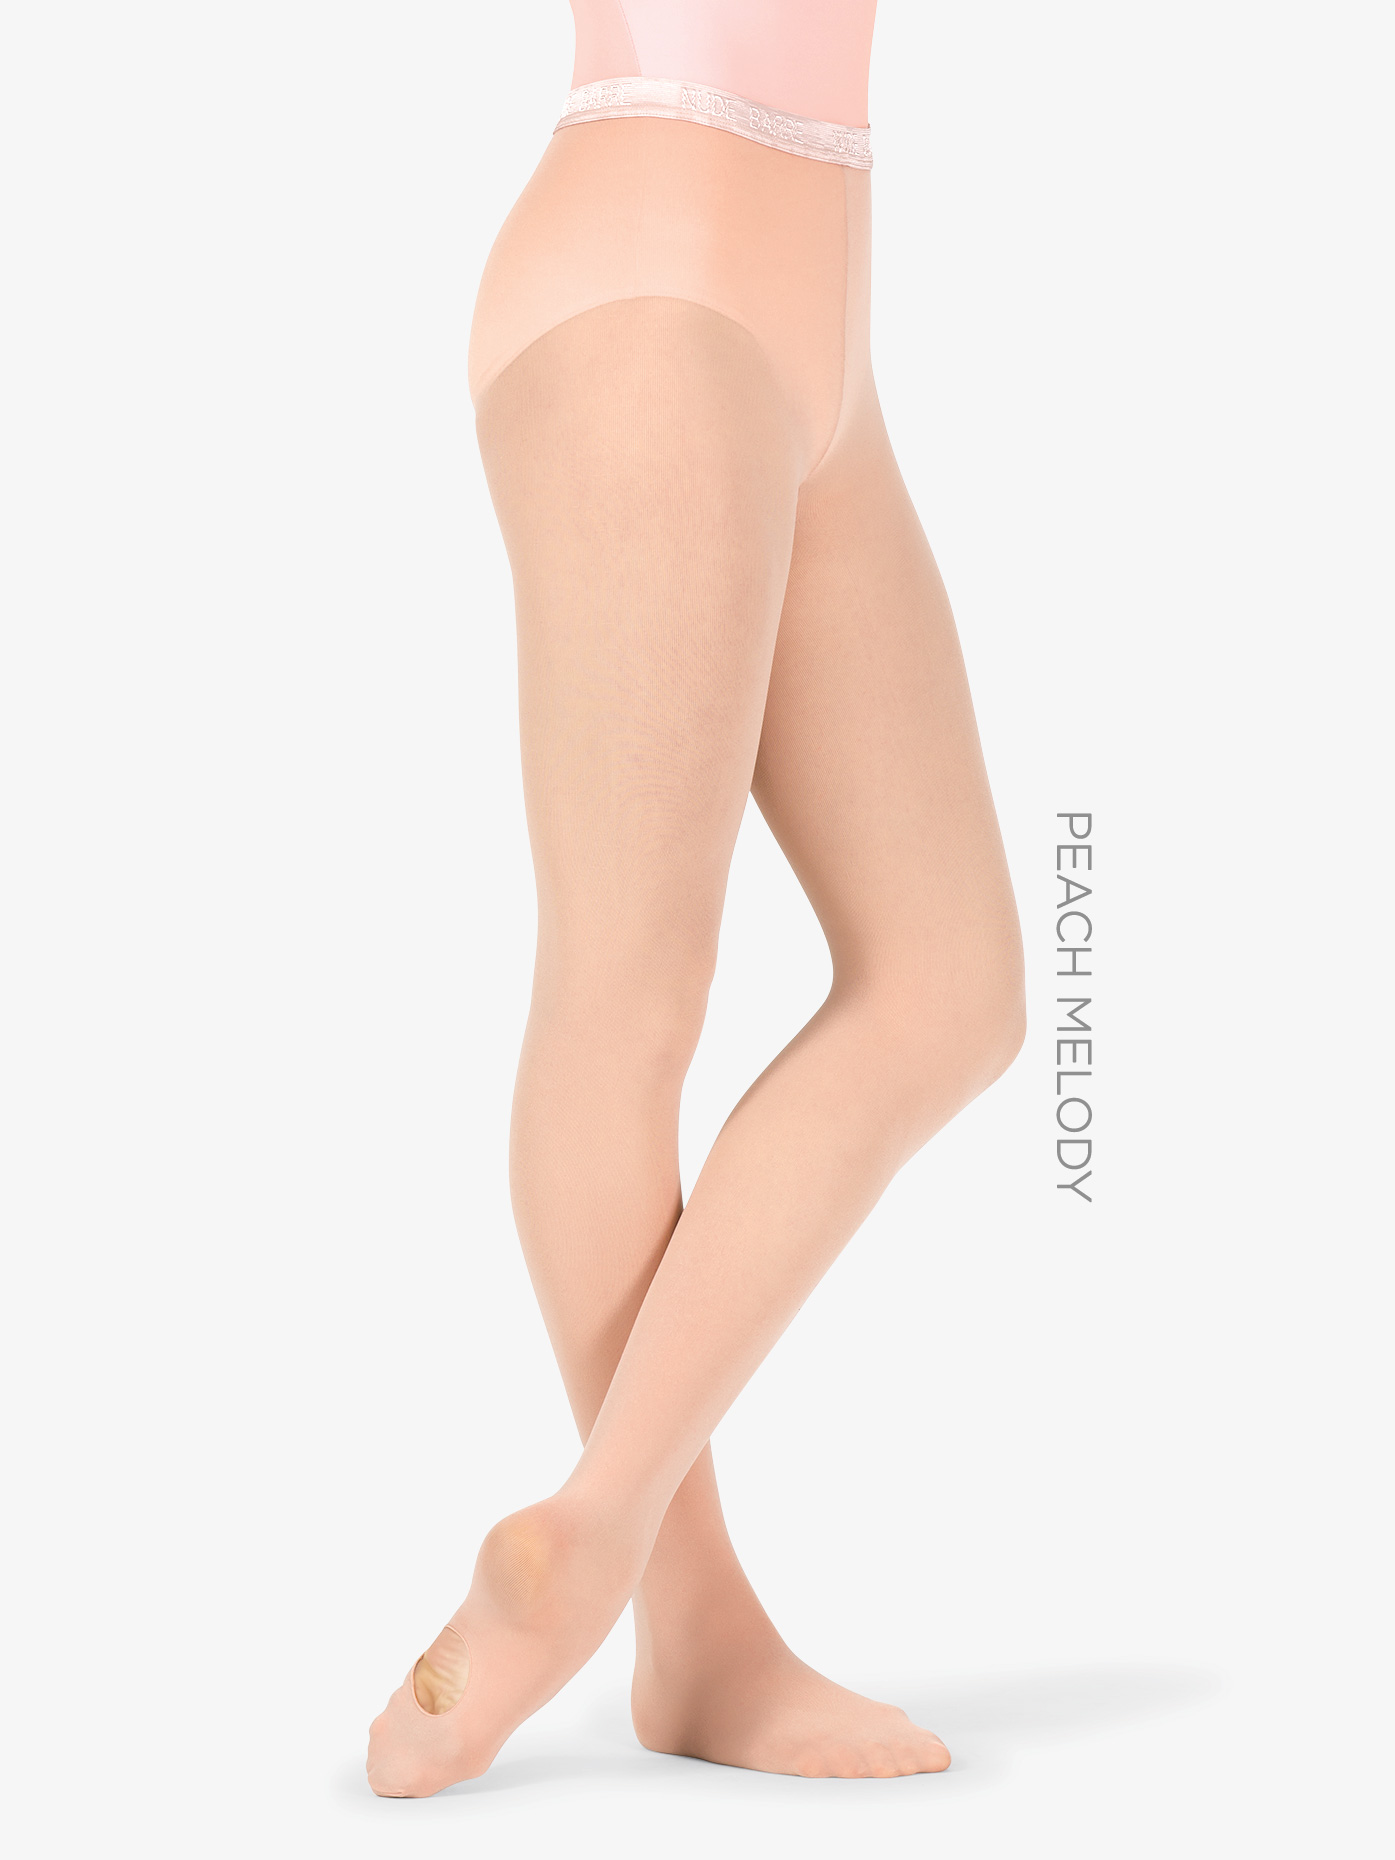 Nude Barre Womens Convertible Dance Tights NB001